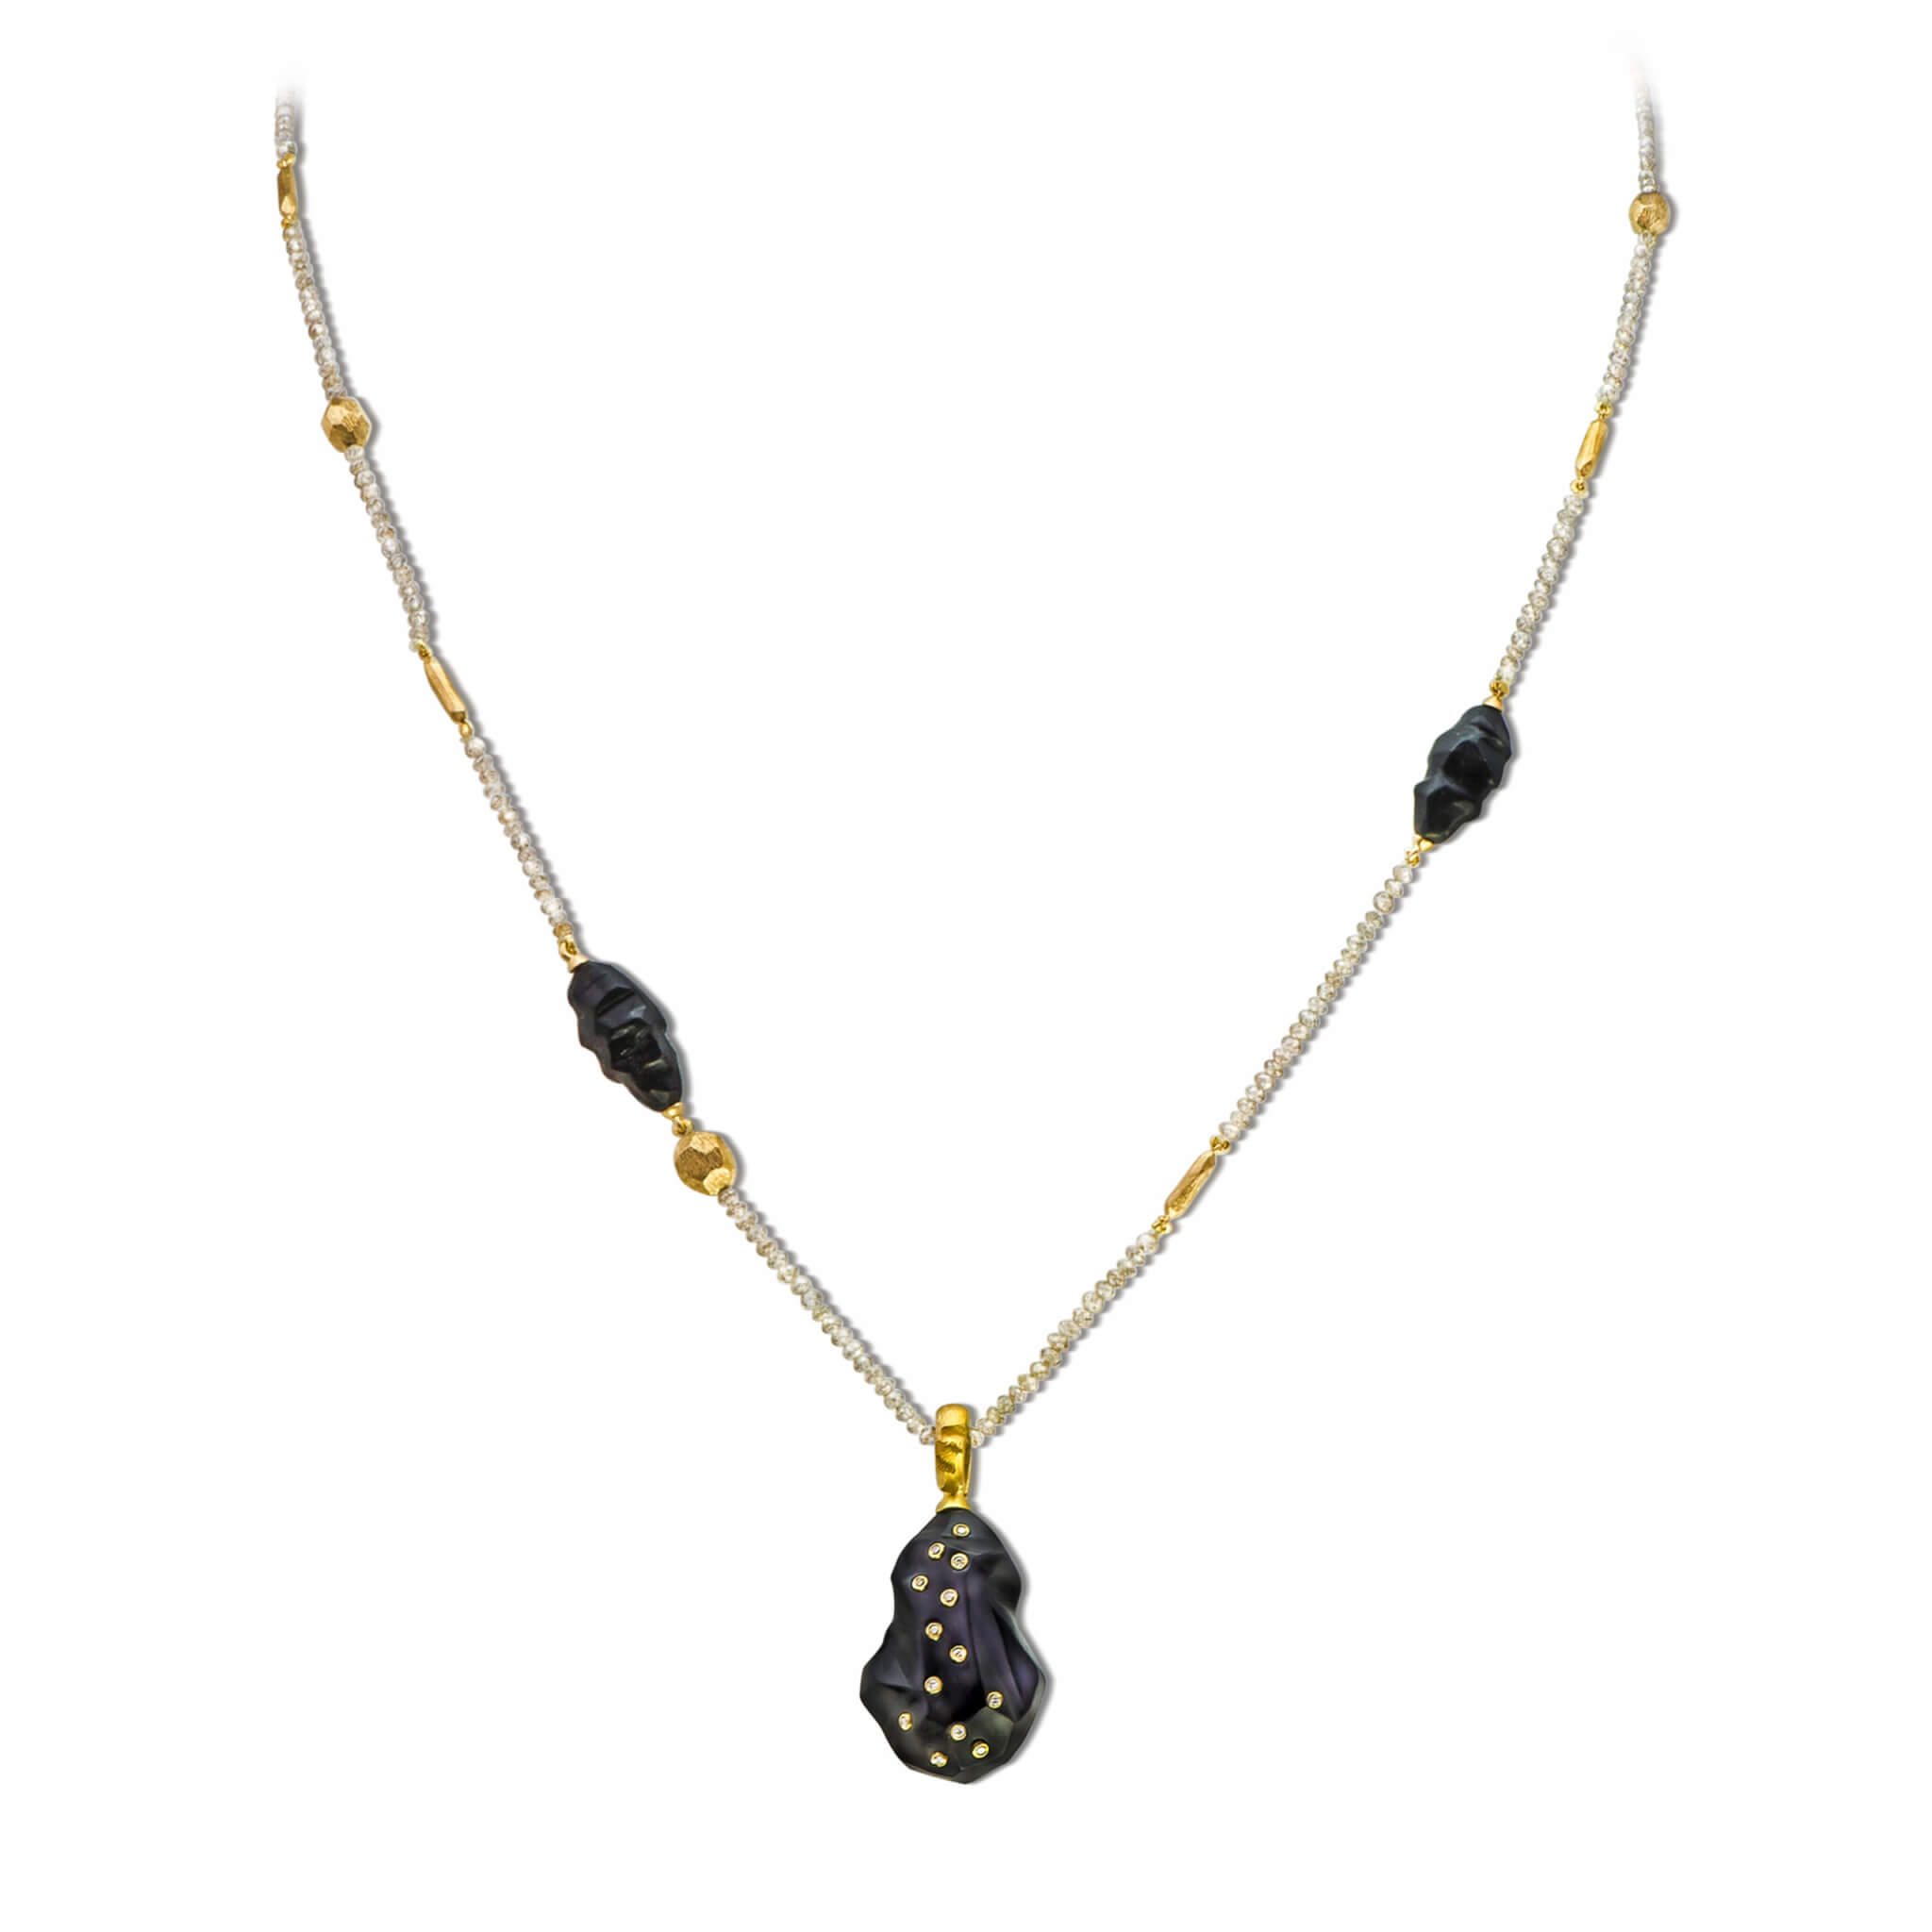 Terre collier or jaune  briollets onyx